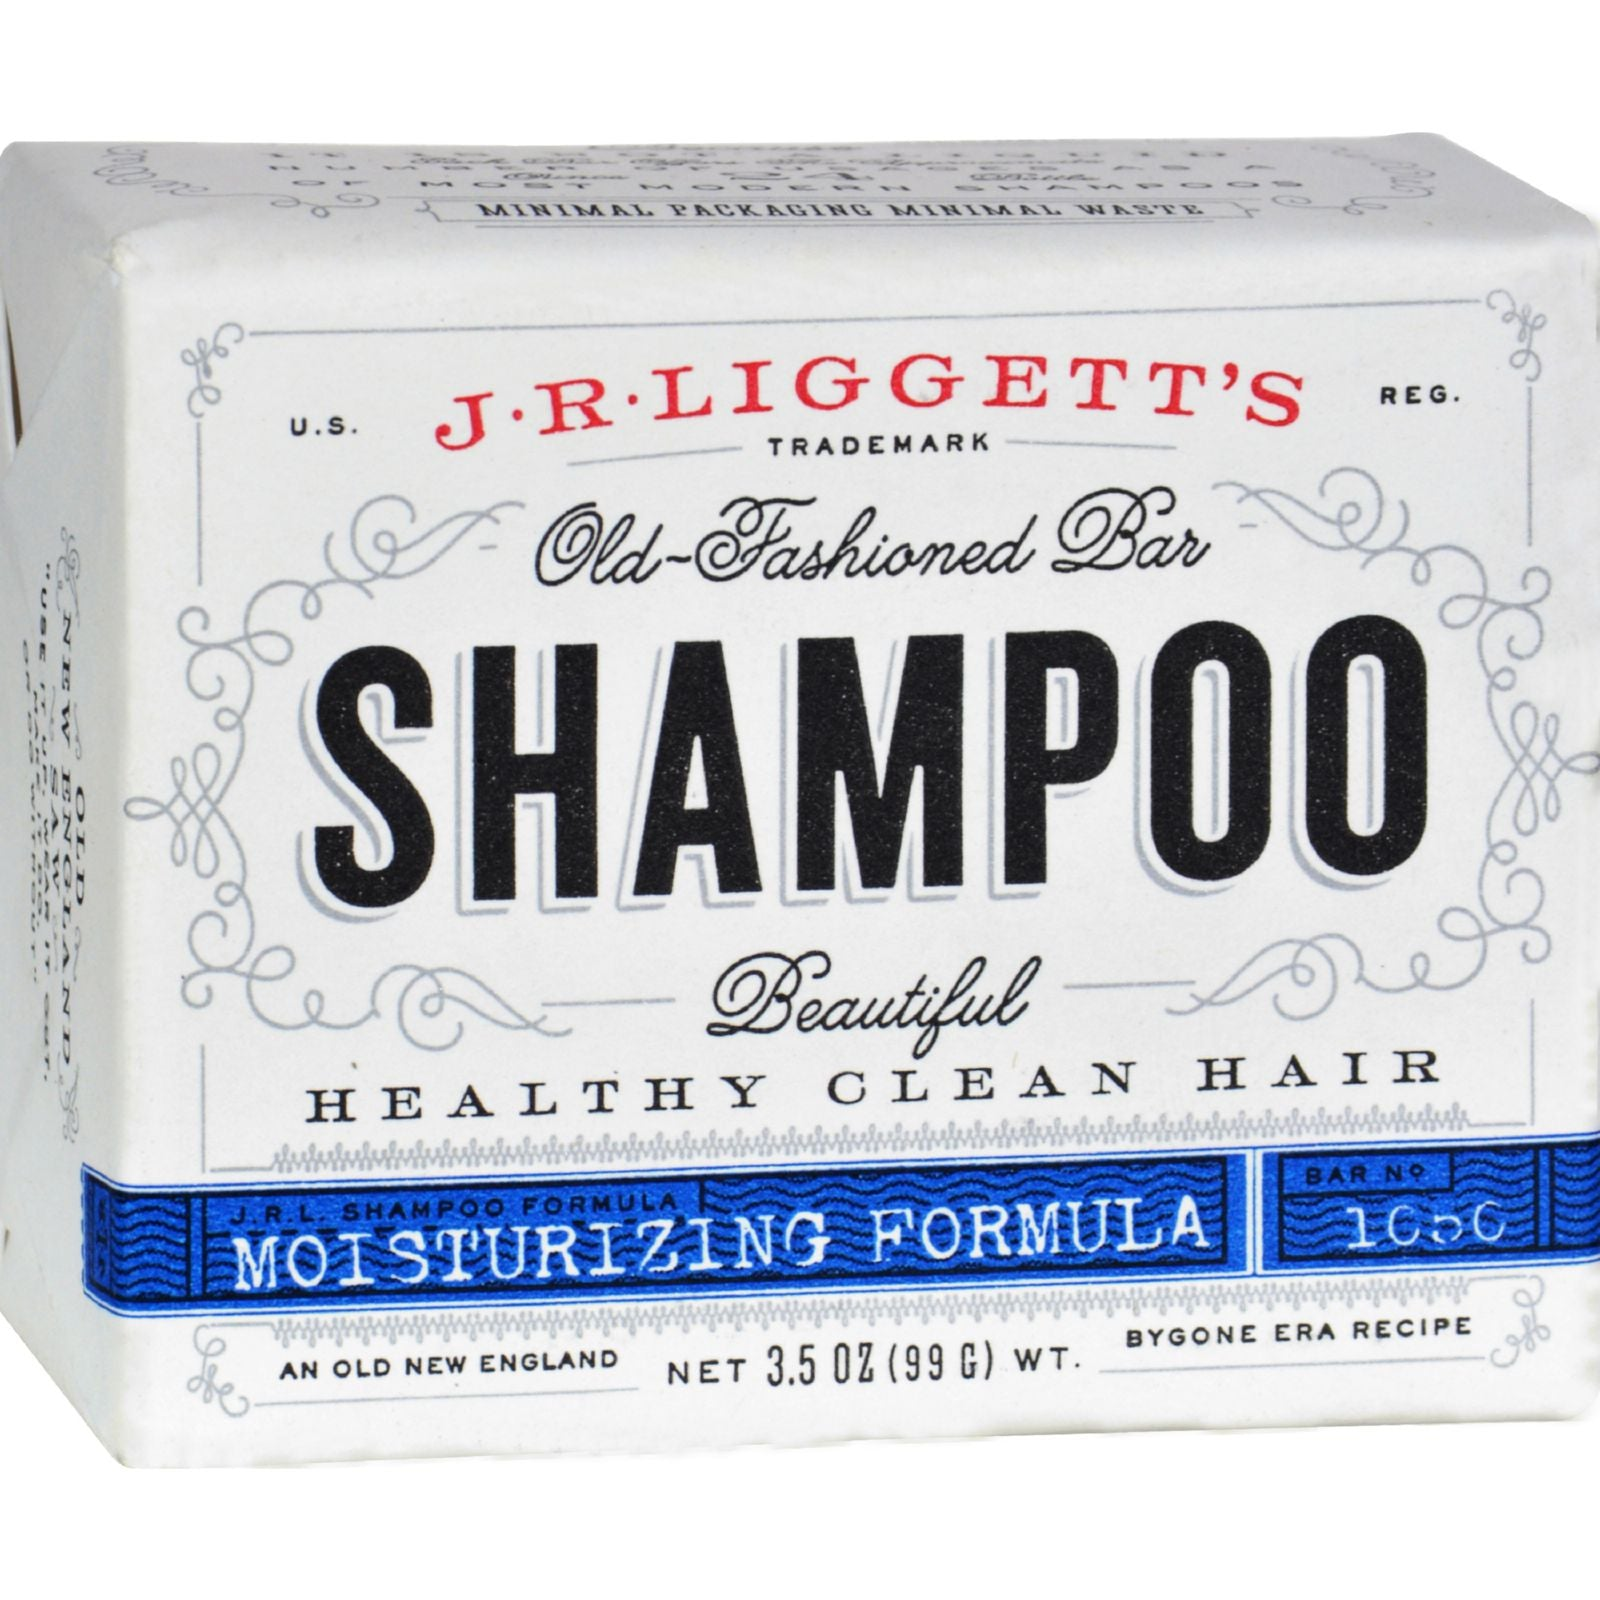 Old-Fashioned Bar Shampoo Damaged and Dry Hair Formula - 3 5 oz